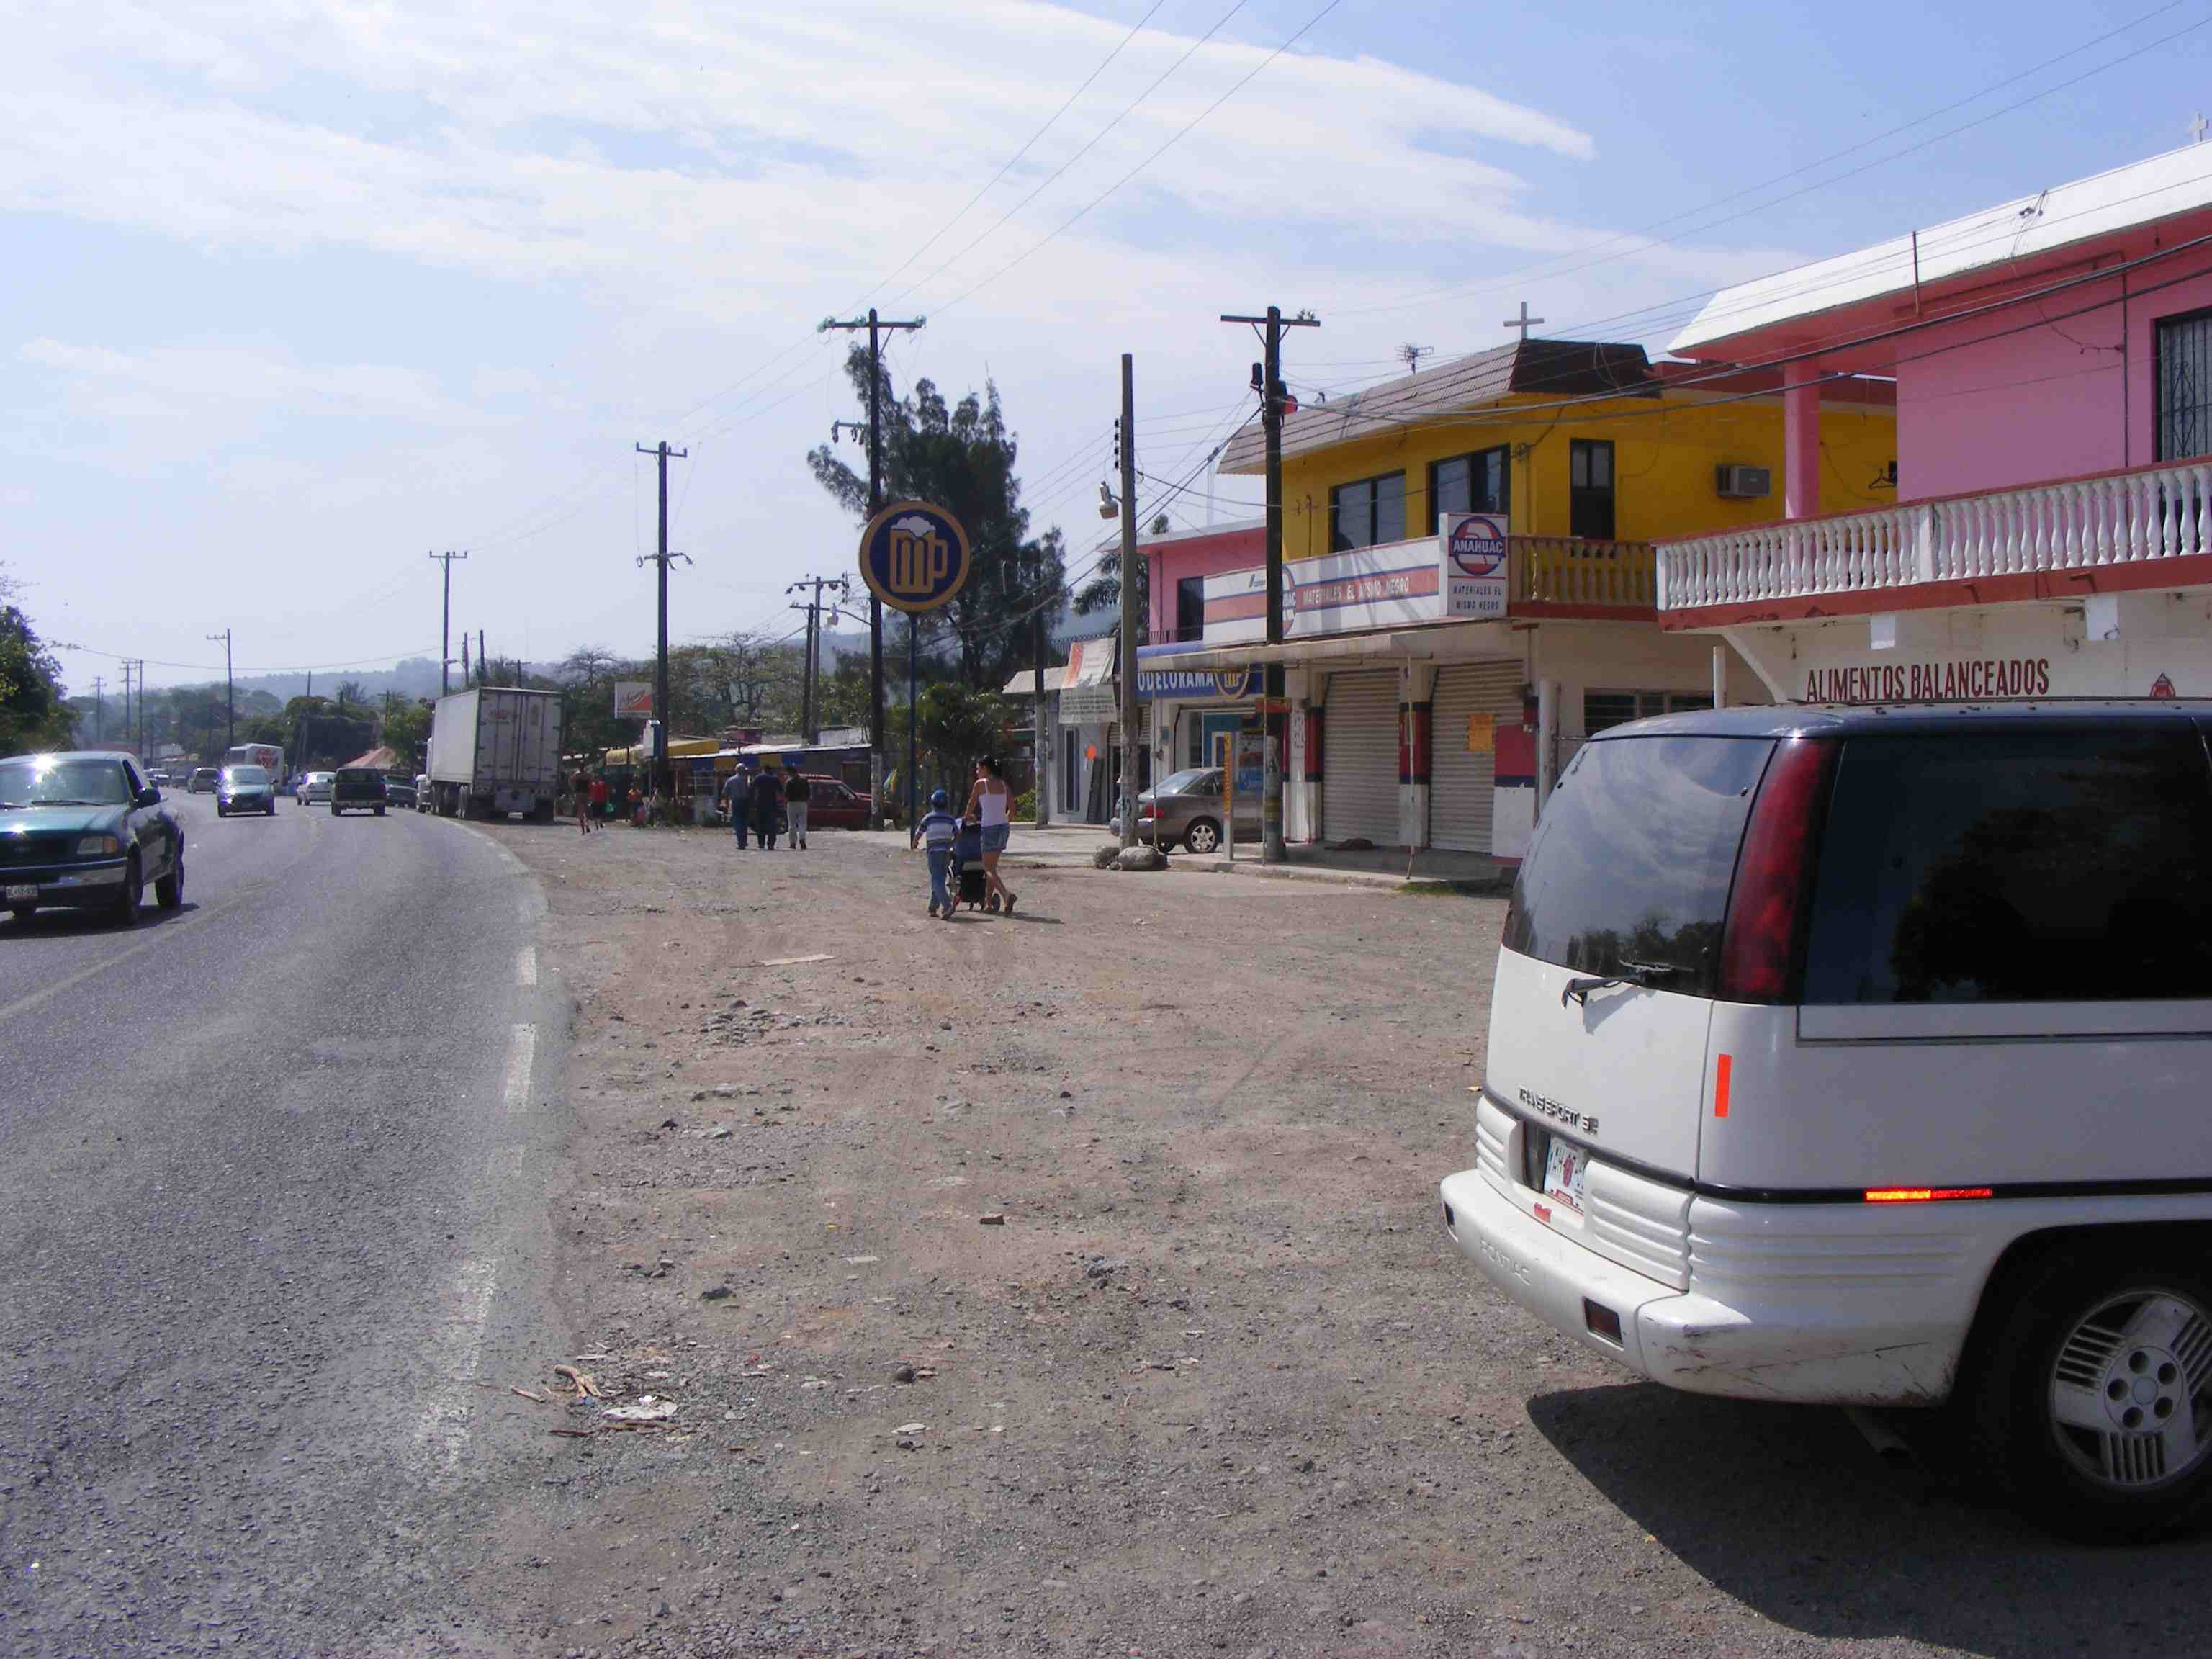 Typical little town of Costa Esmeralda